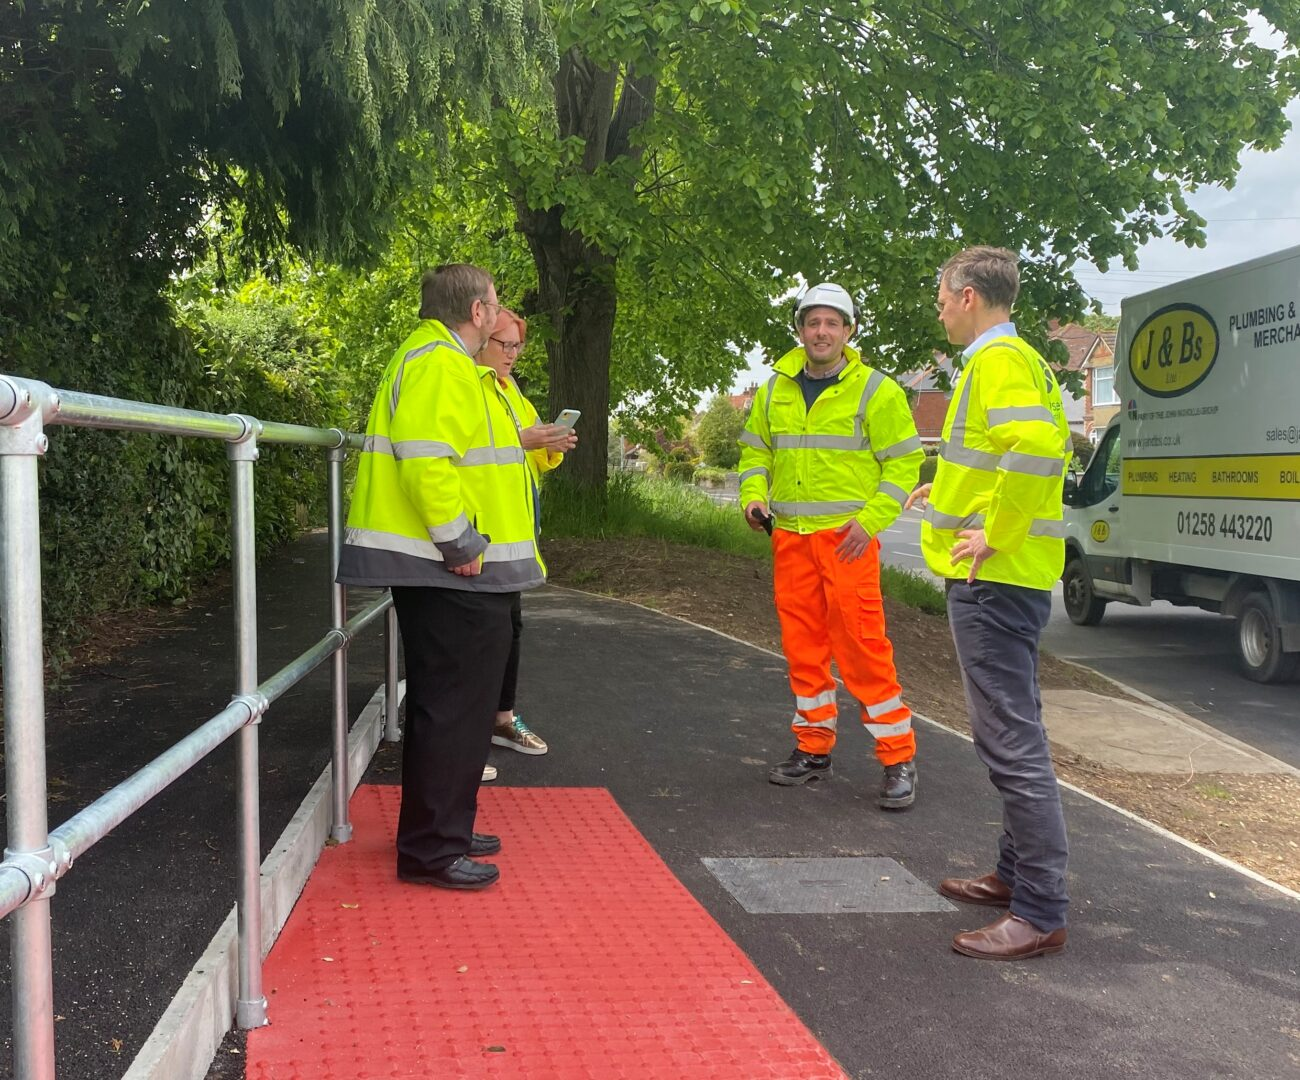 Michael Tomlinson MP visits Leigh Road Sustainable Transport Improvement Works.